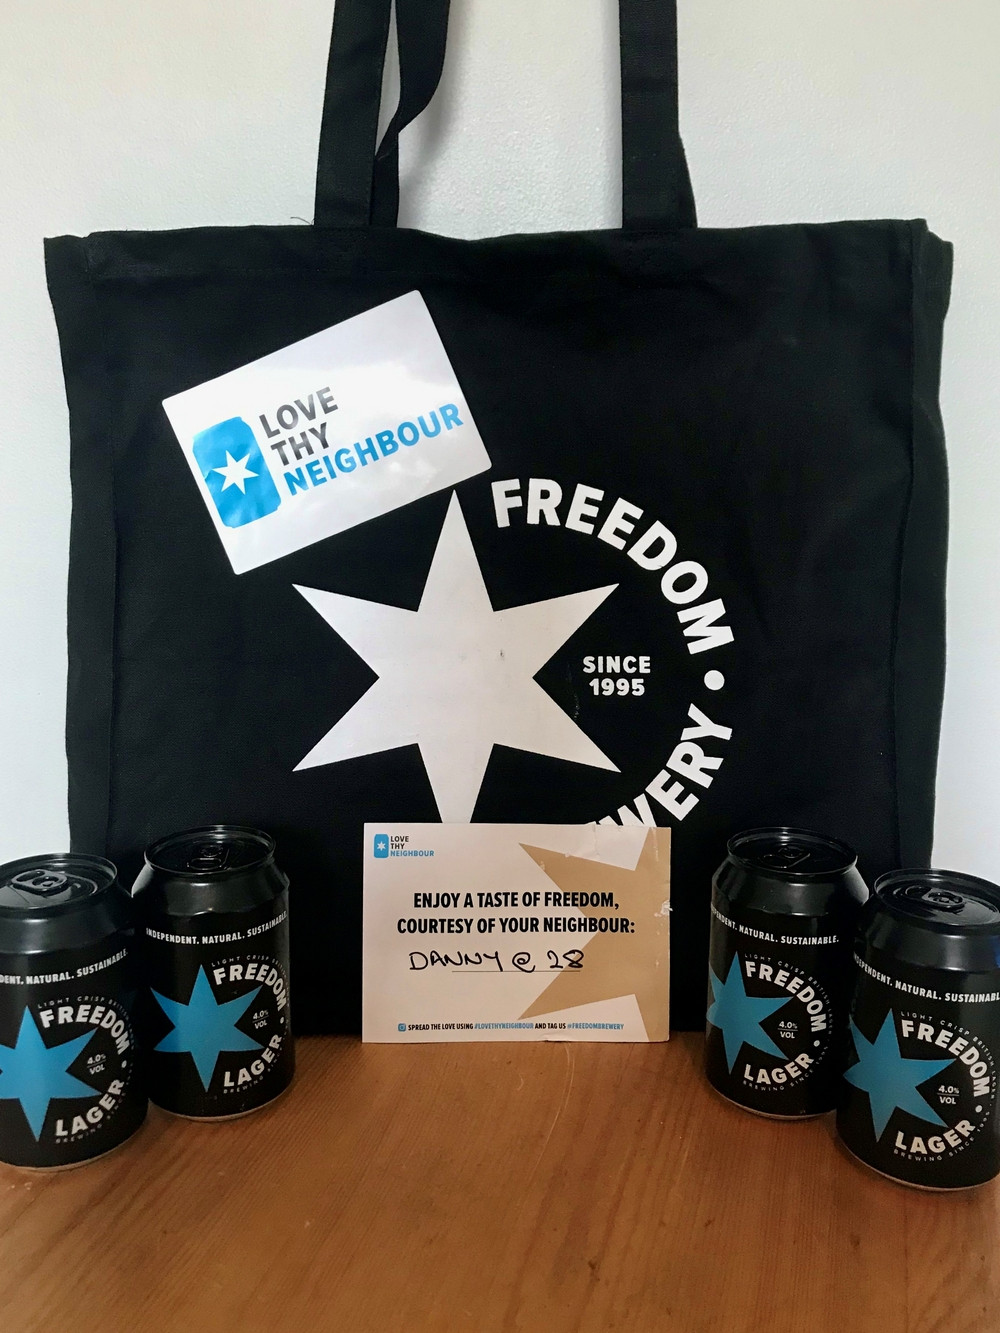 Freedom lager pack